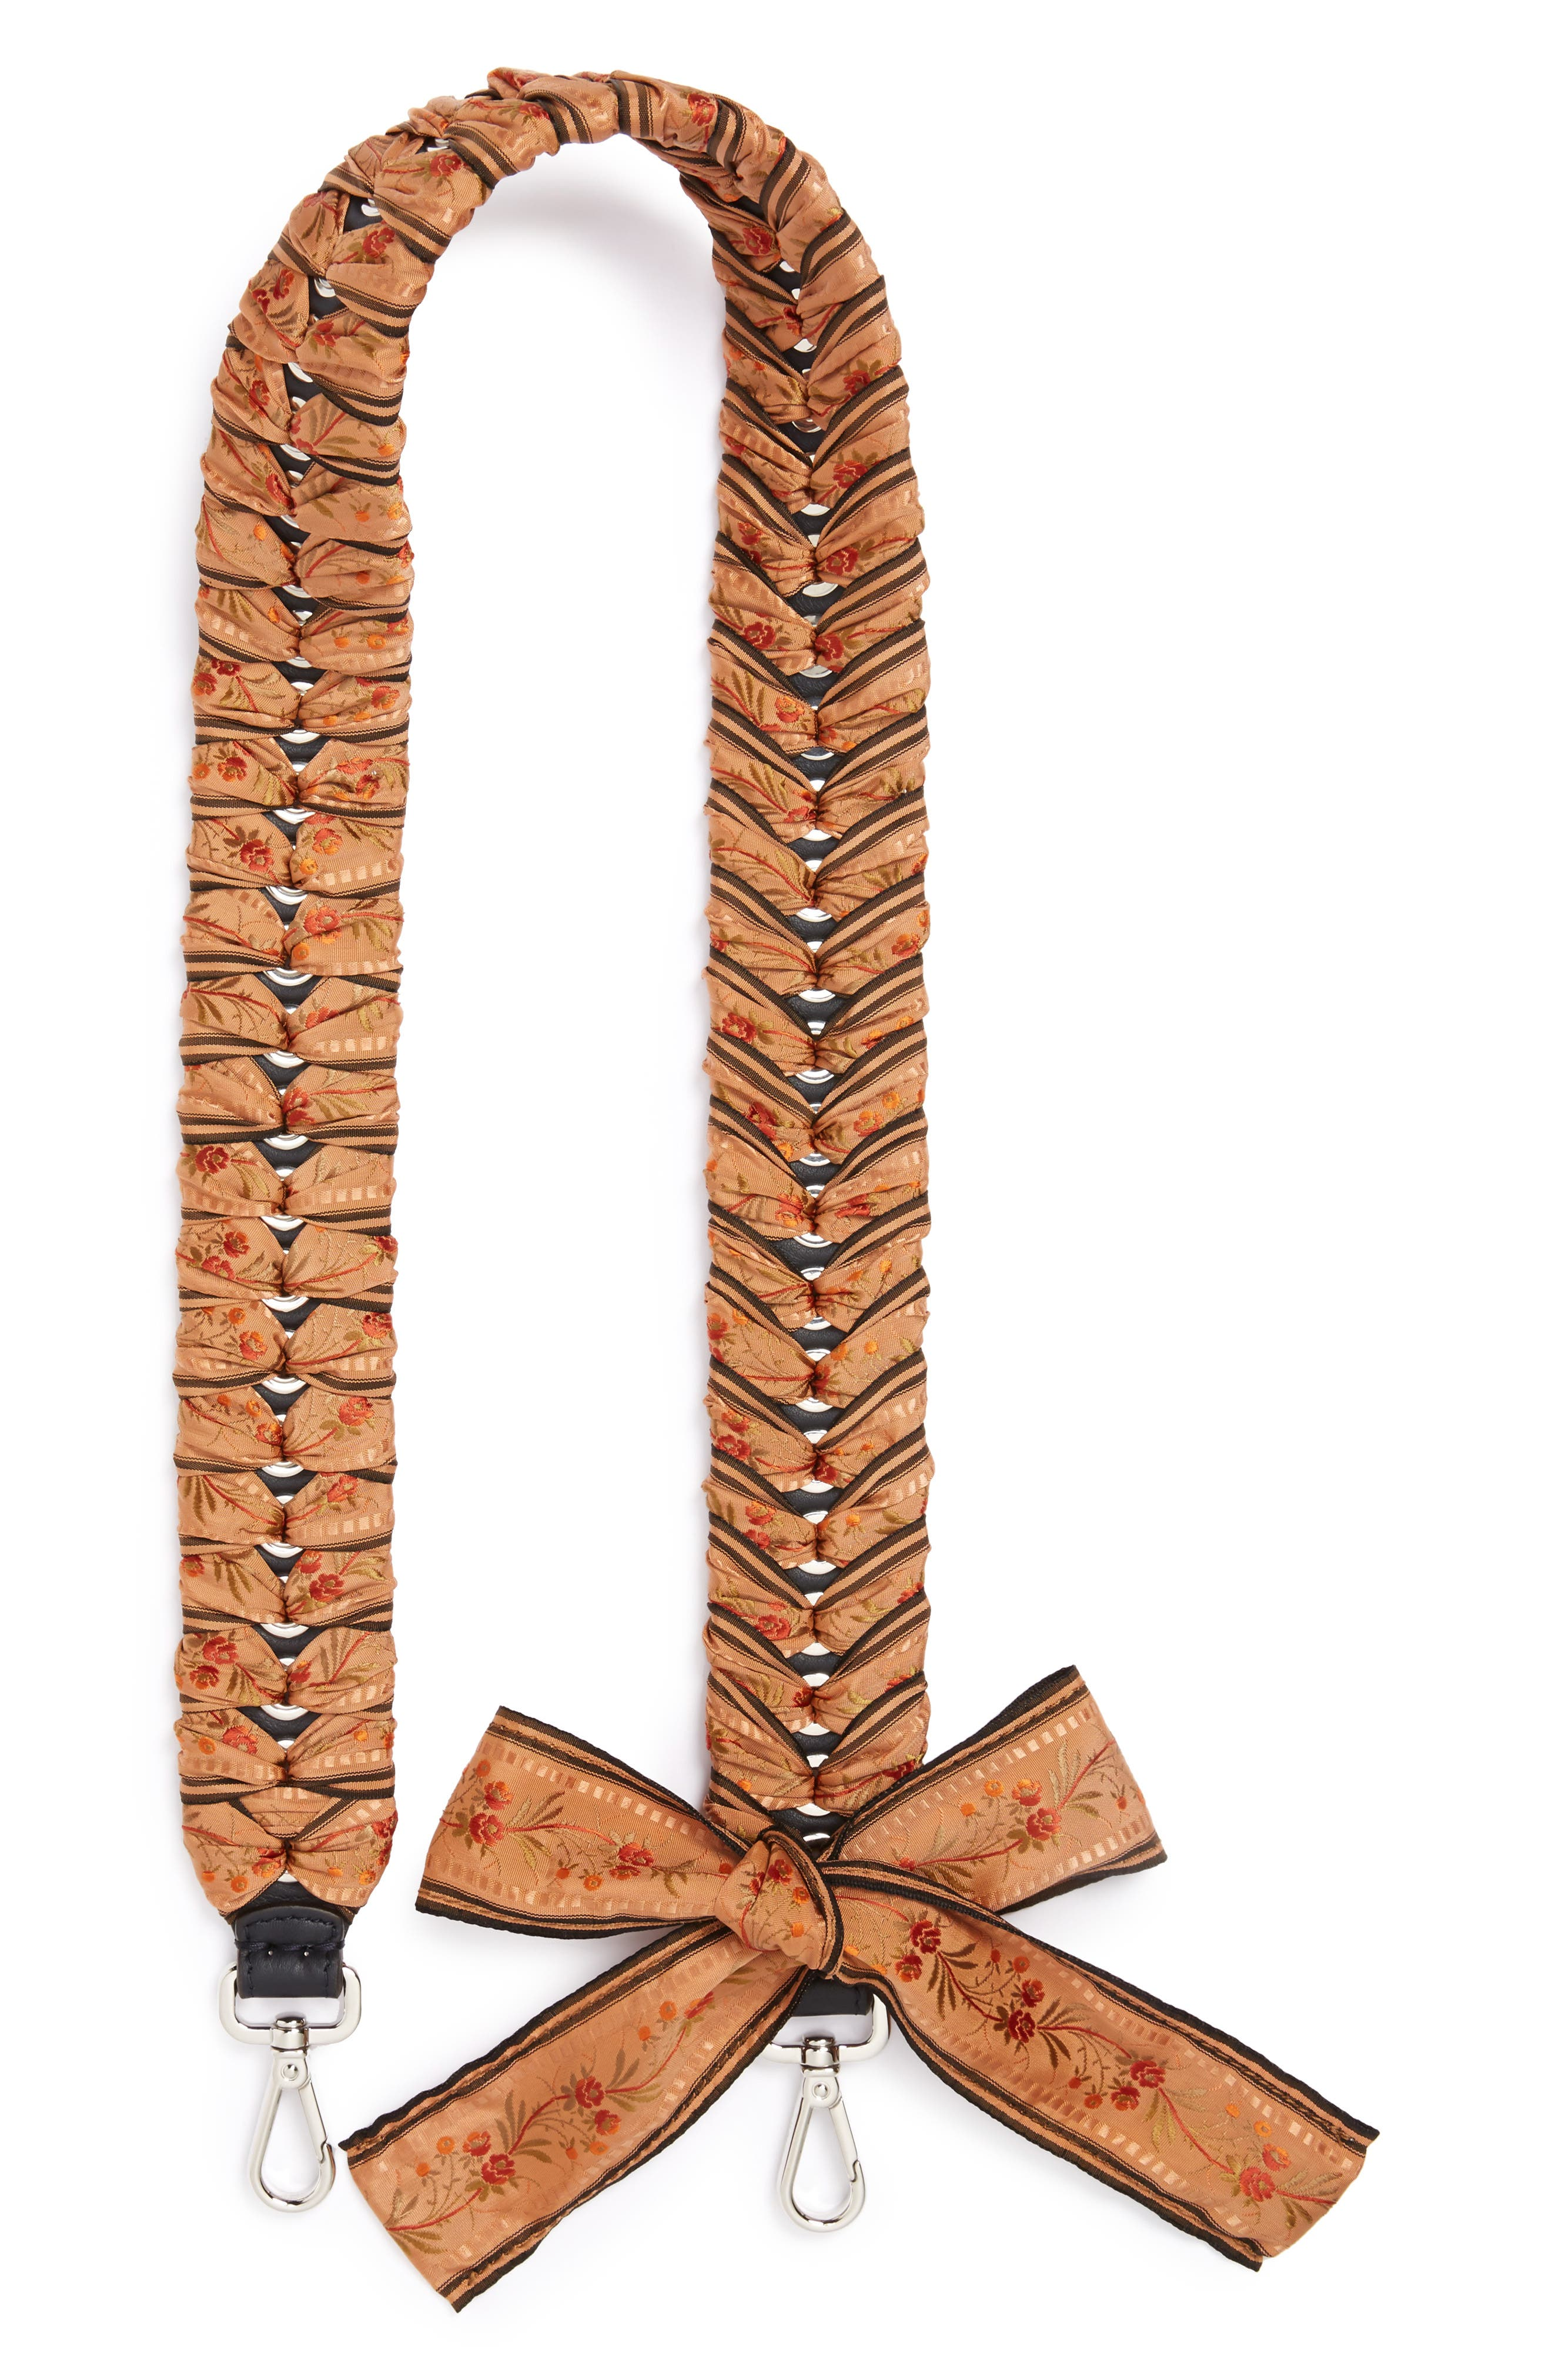 Alternate Image 1 Selected - Fendi Floral Ribbon Guitar Bag Strap